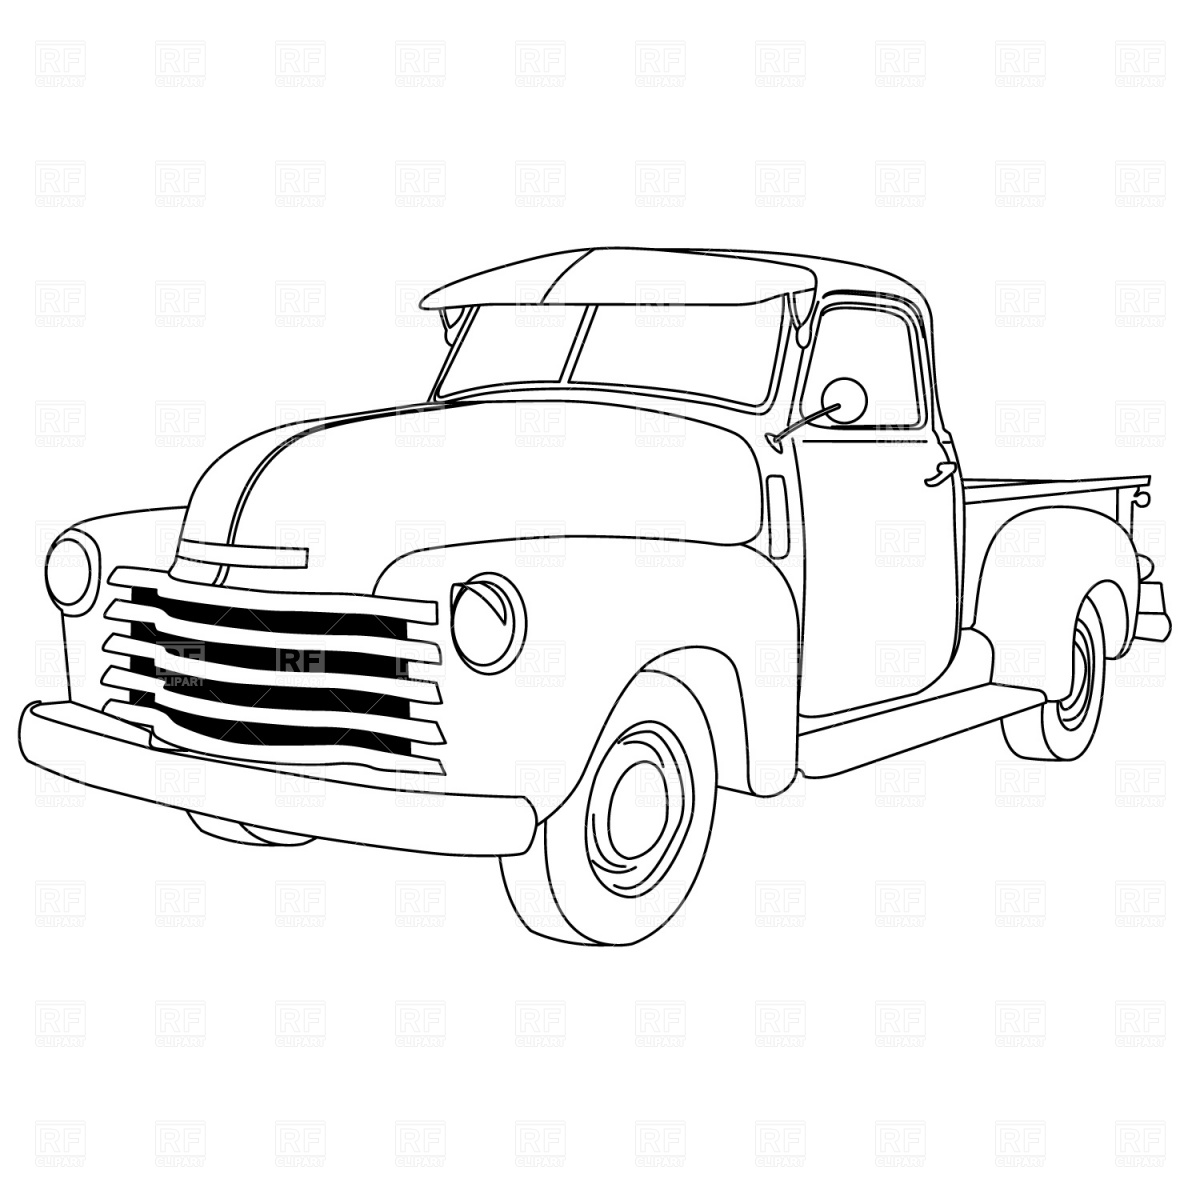 1957 chevy coloring page photo - 1